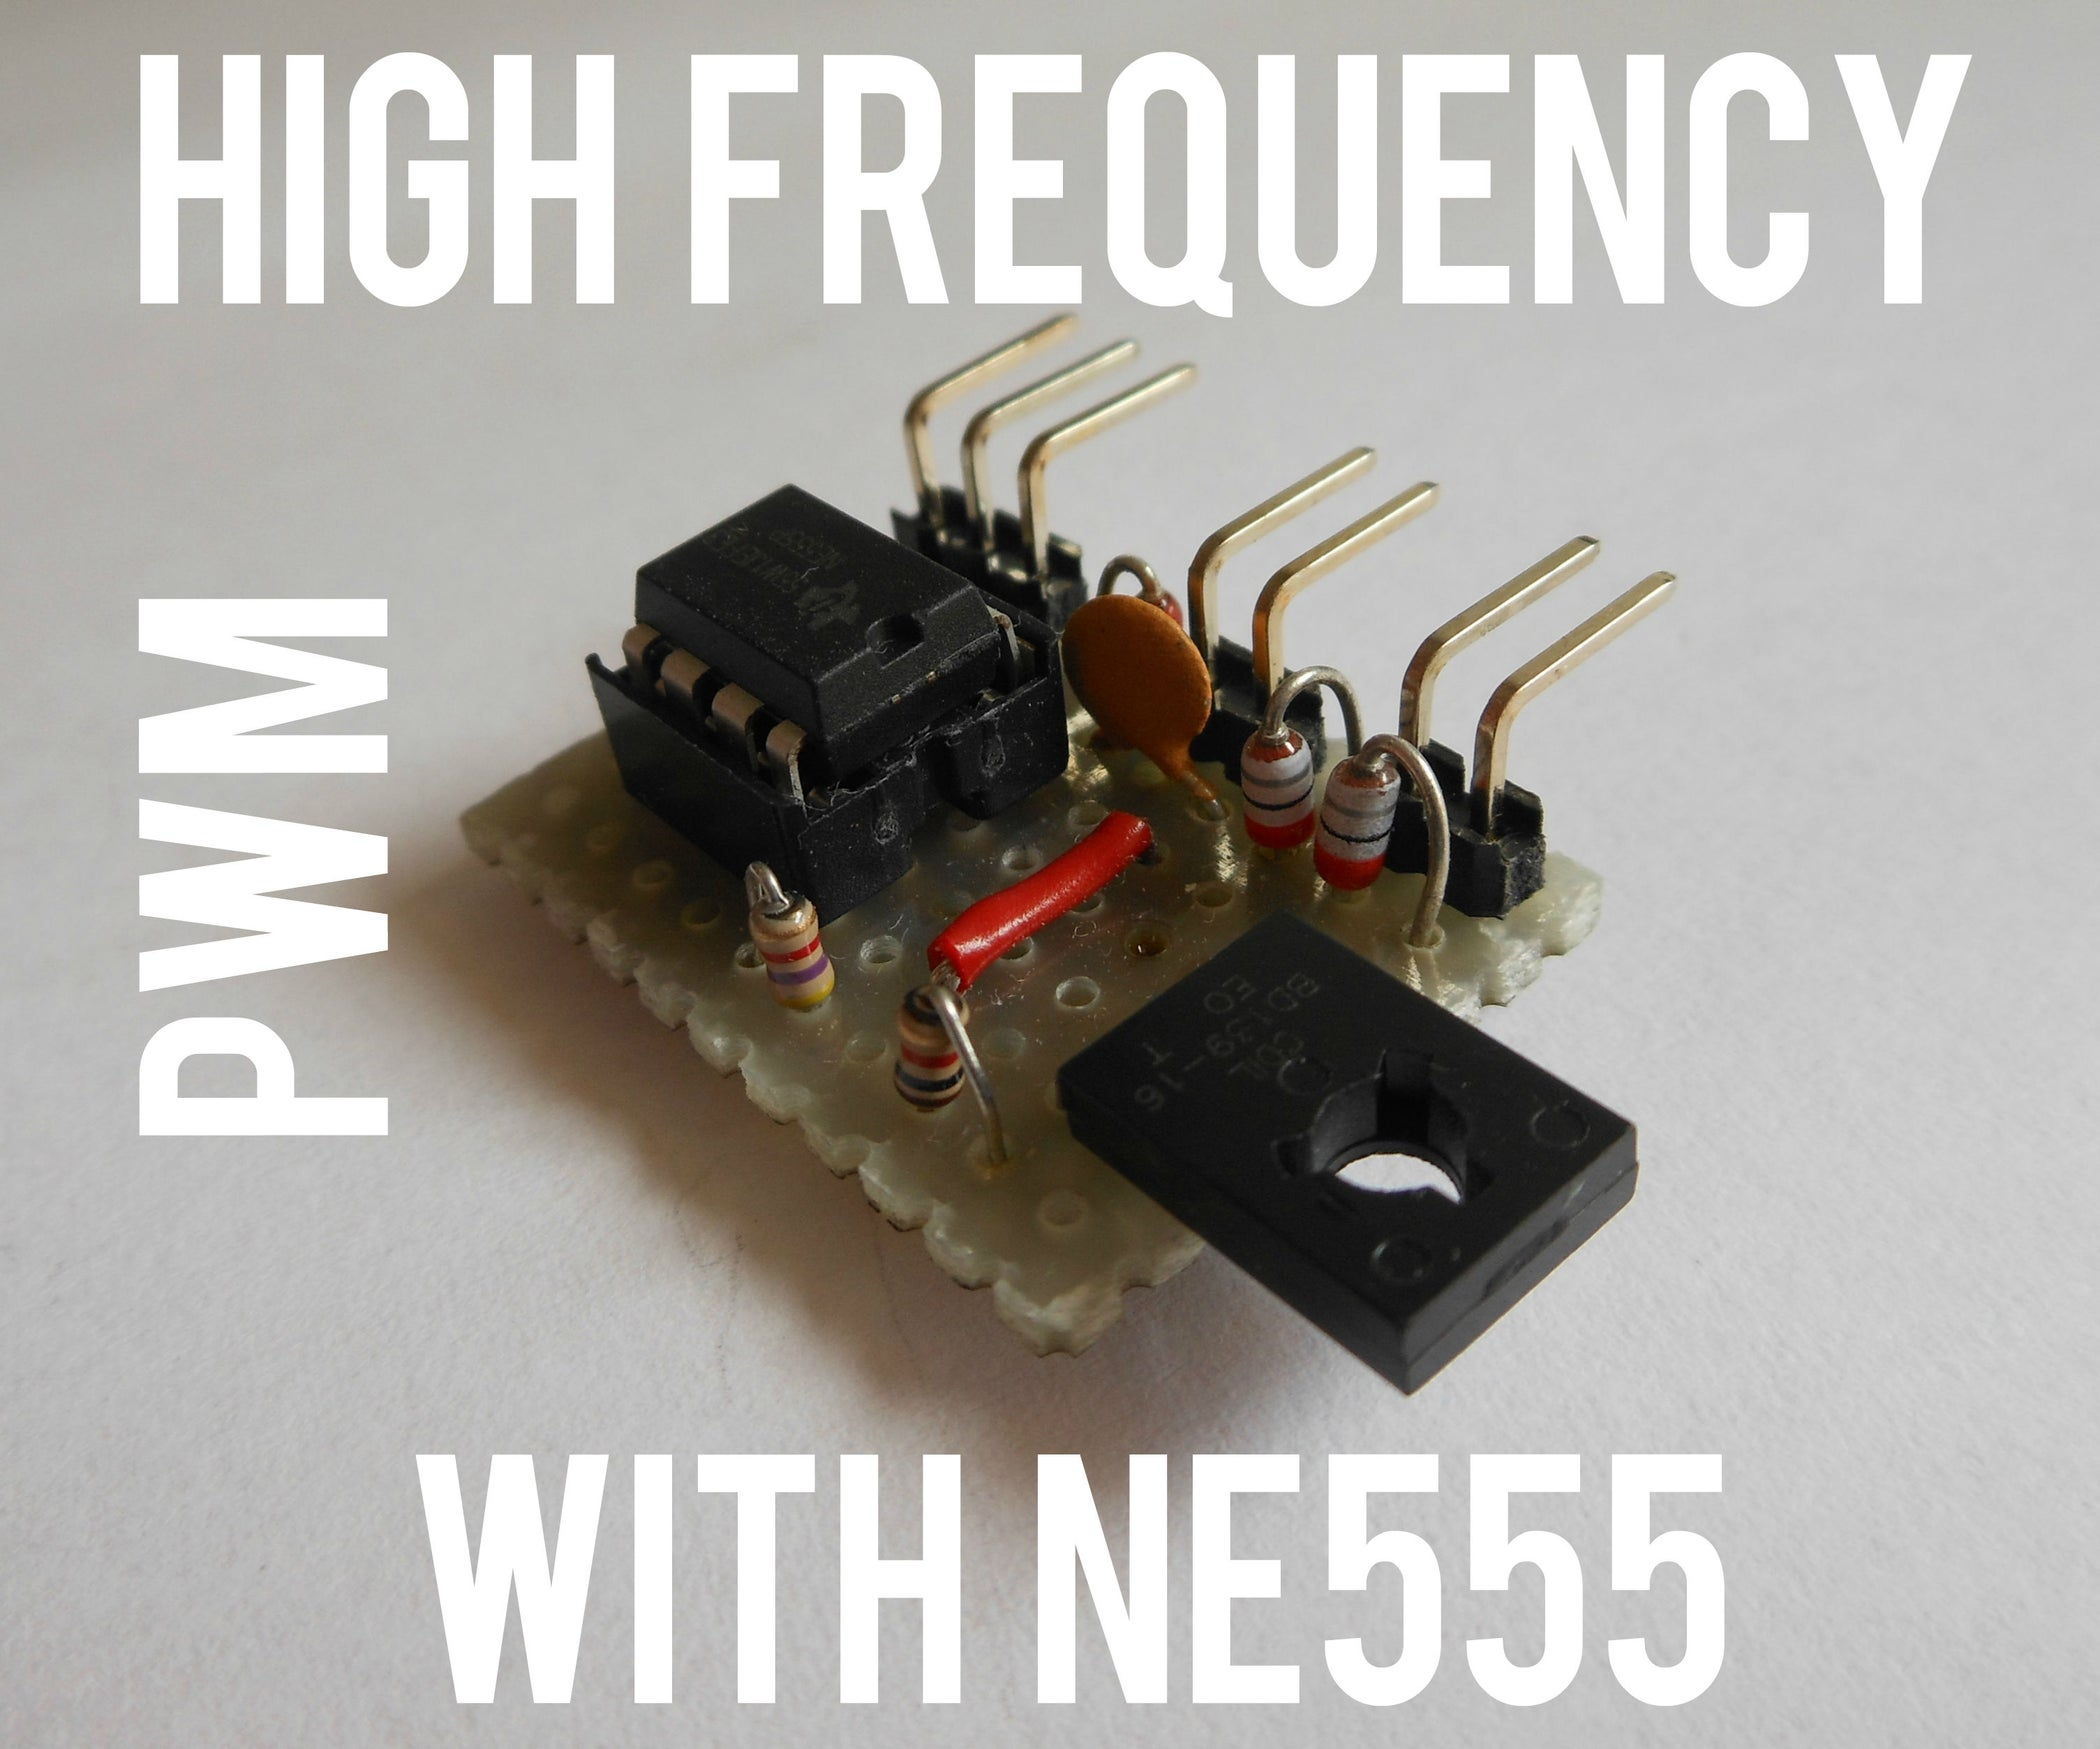 Simplest High Frequency Pwm With Ne555 5 Steps Pictures Circuit Oscillator Lm555 Part 2